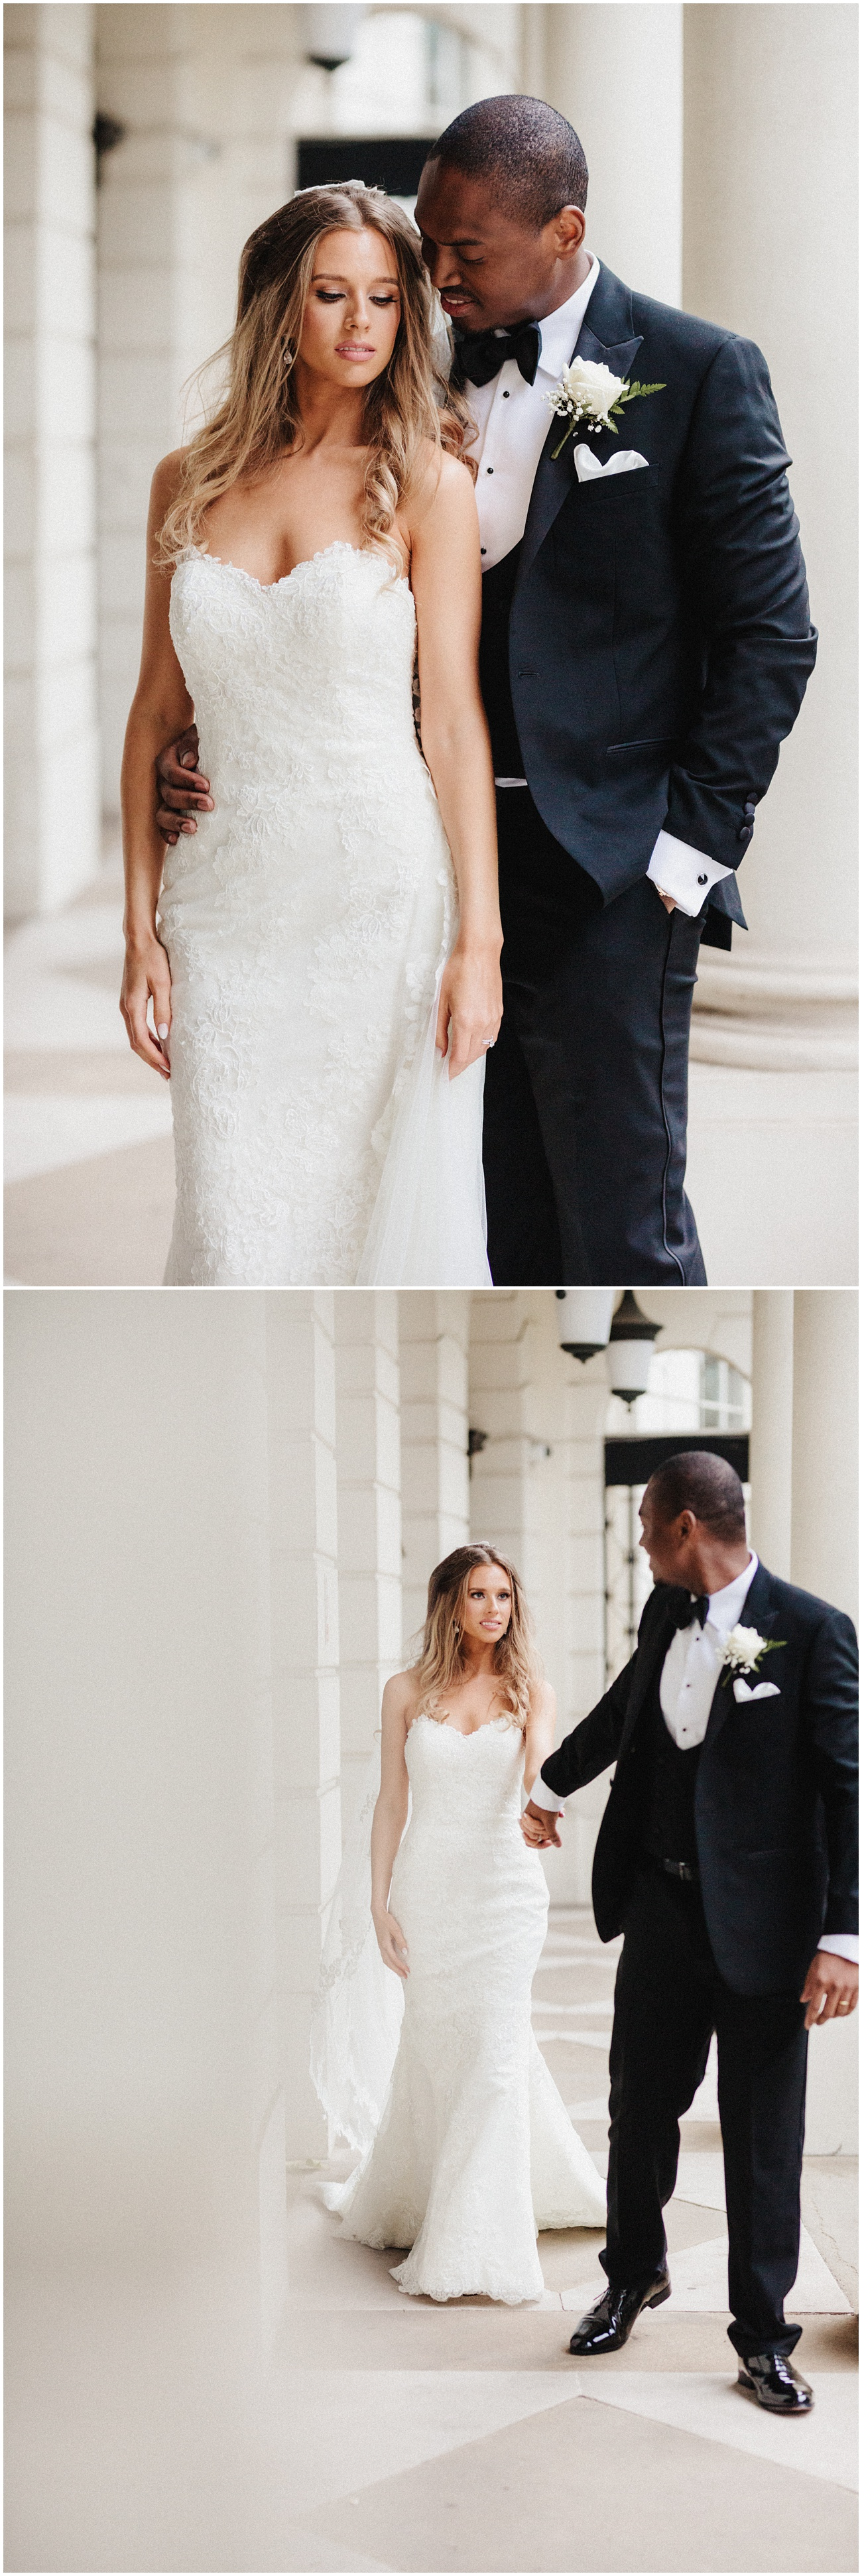 The groom looks towards the bride and then leads her away through the white concrete pillars